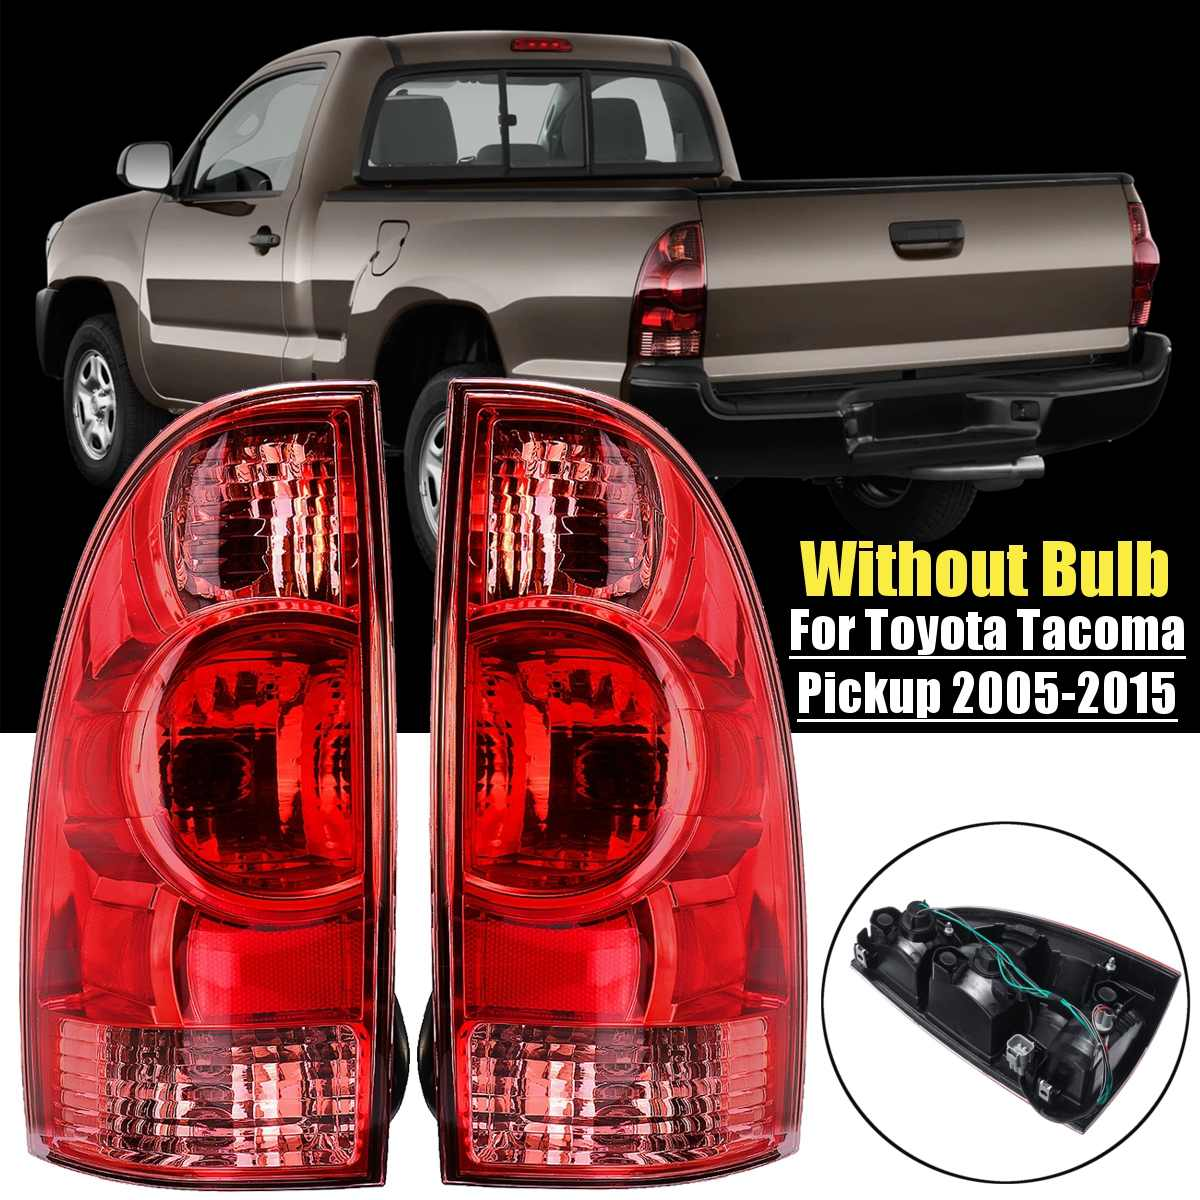 White LED Interior,Reverse,Fog lights package Tool for 2012-2015 Toyota Tacoma